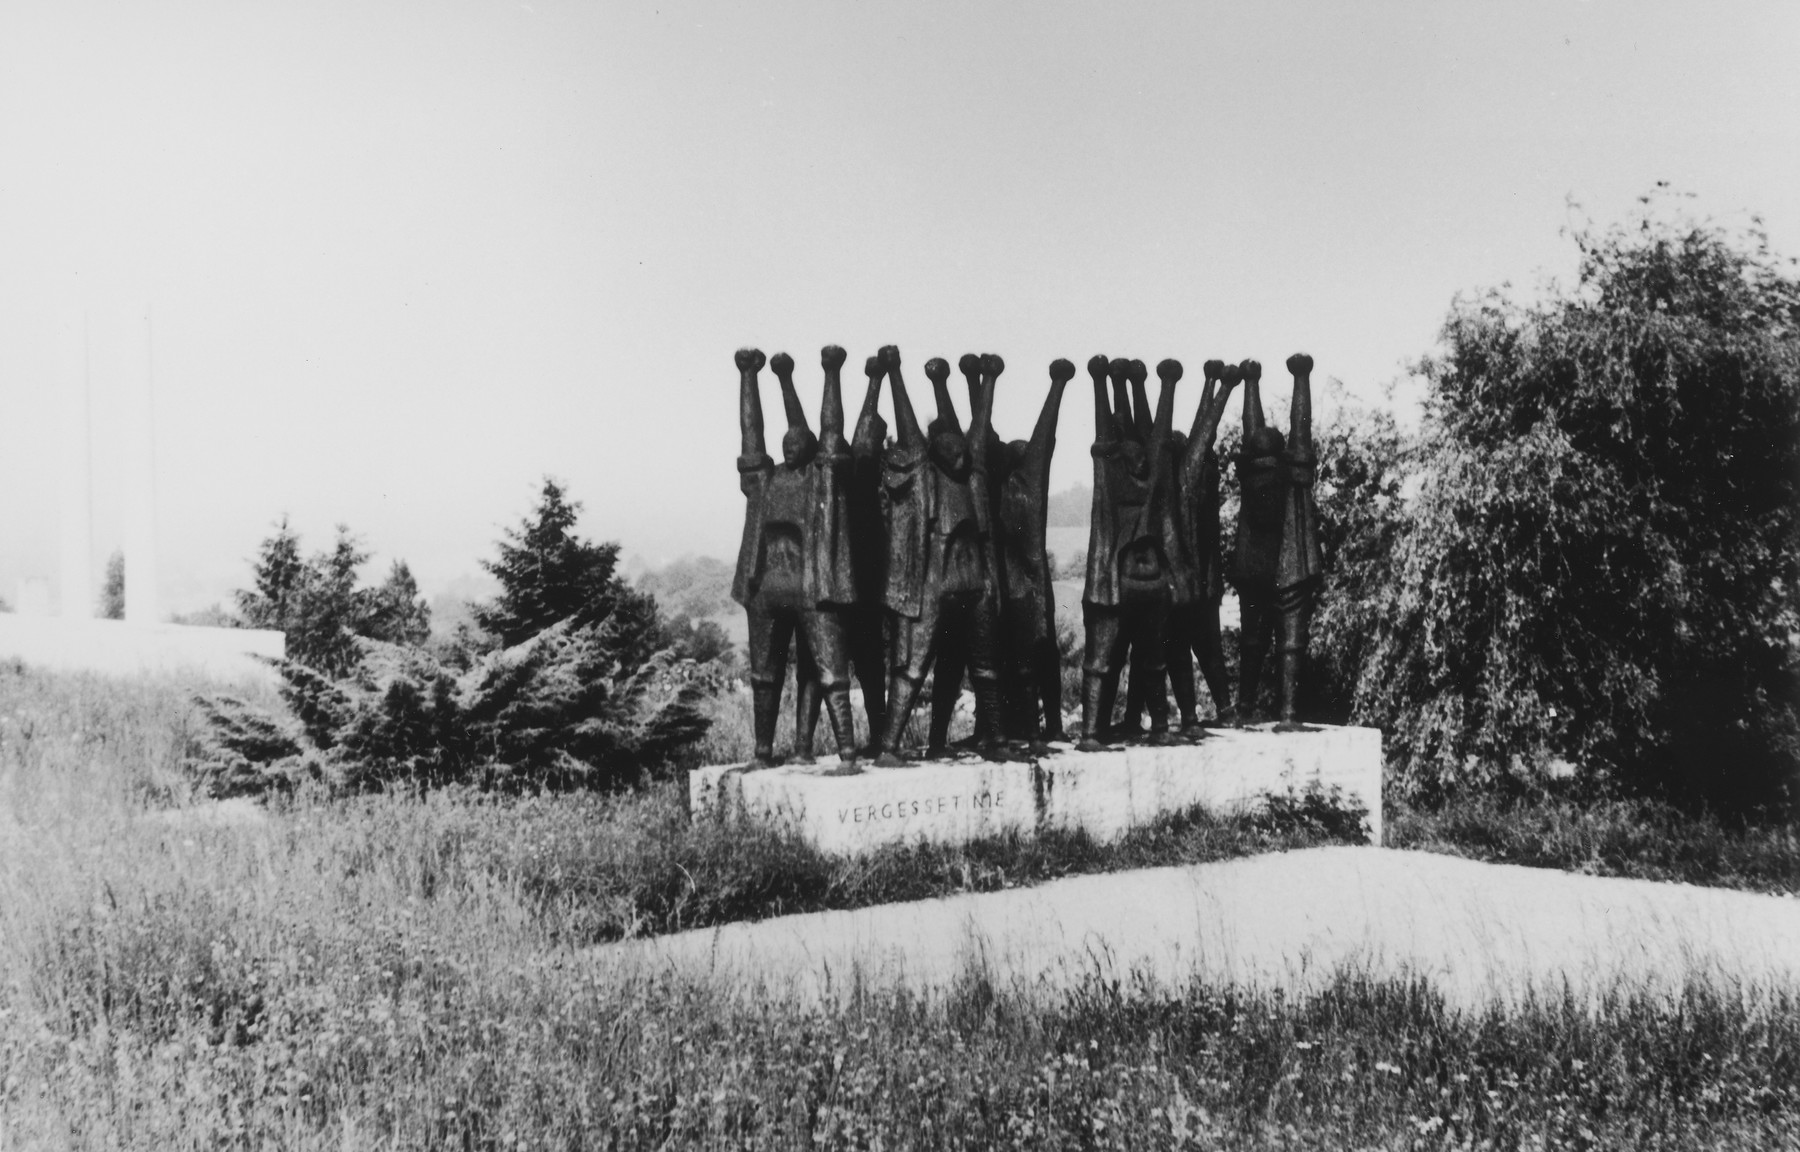 Memorial sculpture to the Hungarian victims of Mauthausen erected on the site of the former concentration camp.